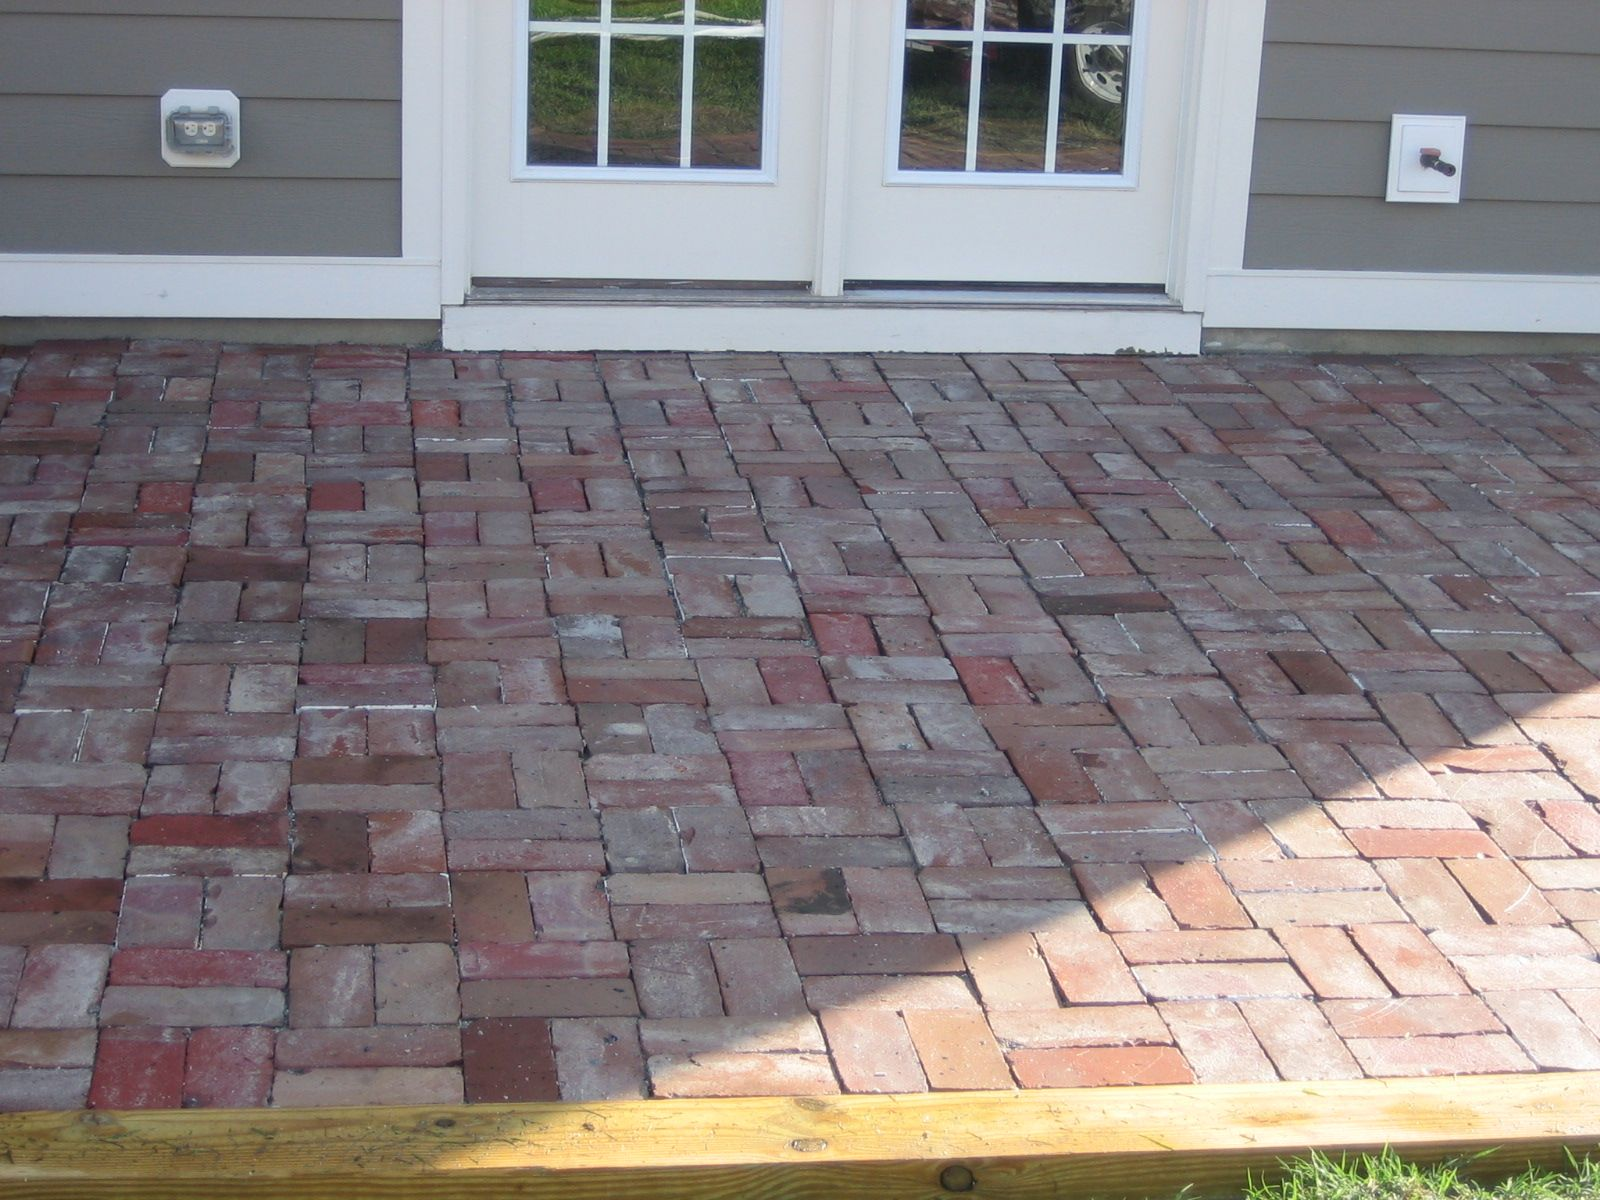 Replacing Concrete Patio With Brick In Double Basket Weave Pattern For A  Cottage Look And Feel